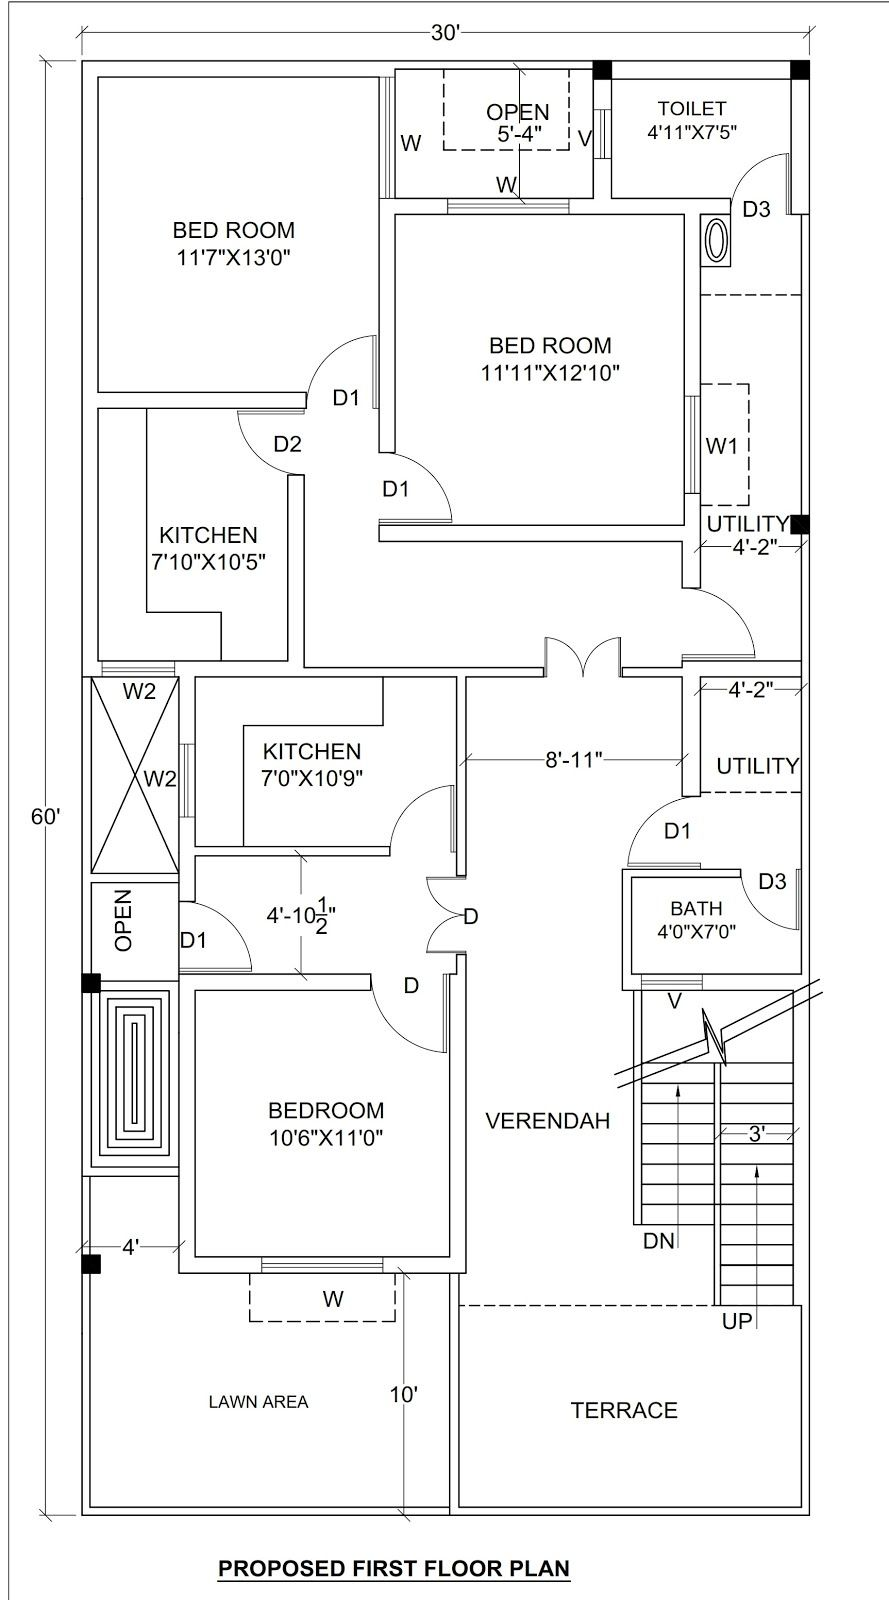 House Plan For 30 X 60 1800 Sq Ft Housewala 2bhk House Plan House Plans 30x50 House Plans